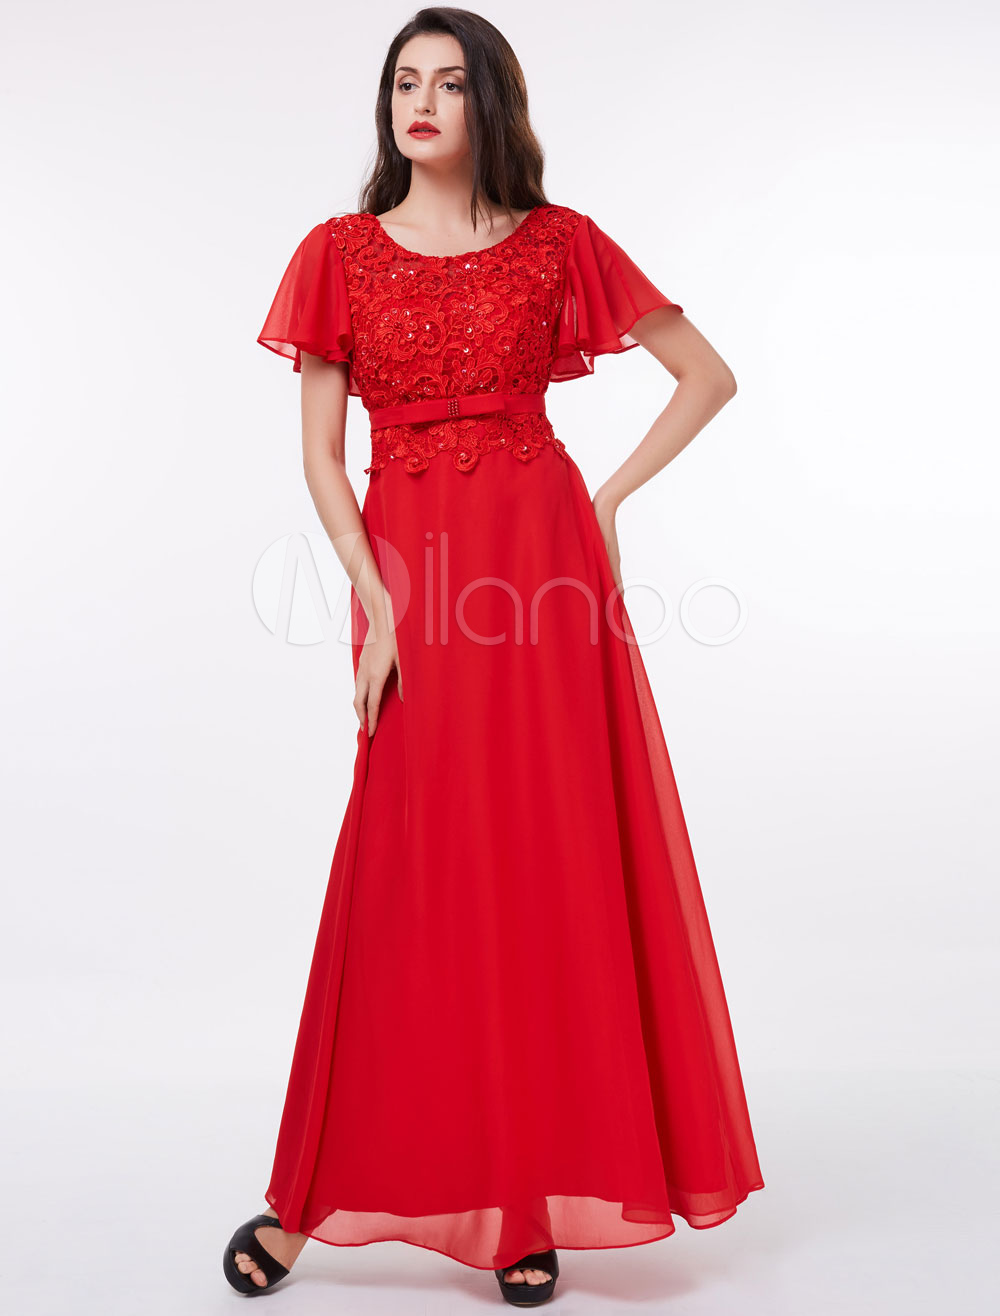 Red Prom Dress Chiffon Lace Sequin Beaded Bow Sash Short Sleeve Floor Length Formal Party Dress